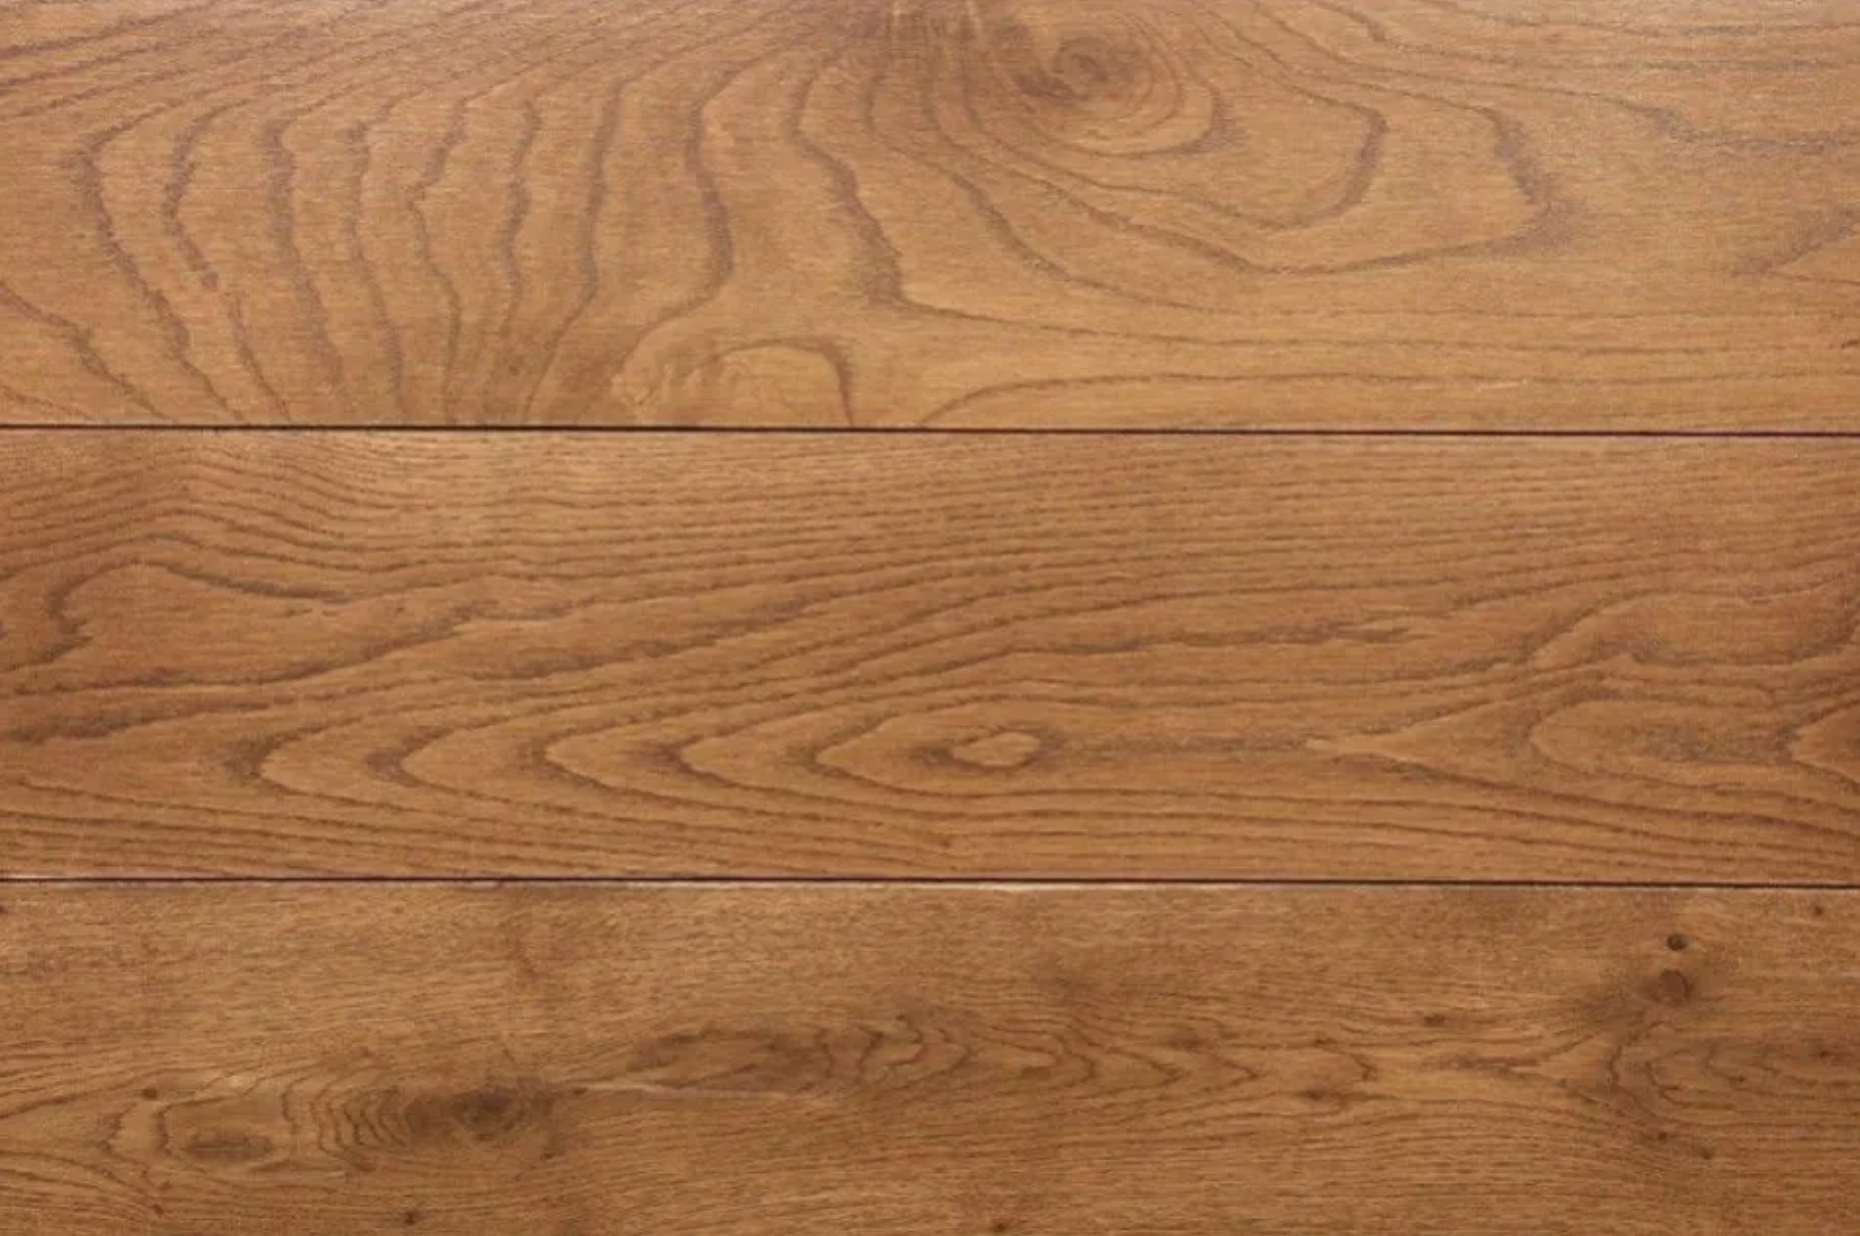 Beveled Edge Wood Flooring As The Name Suggests Features A Bevel On Edges Of Boards Unlike Square Ion Method